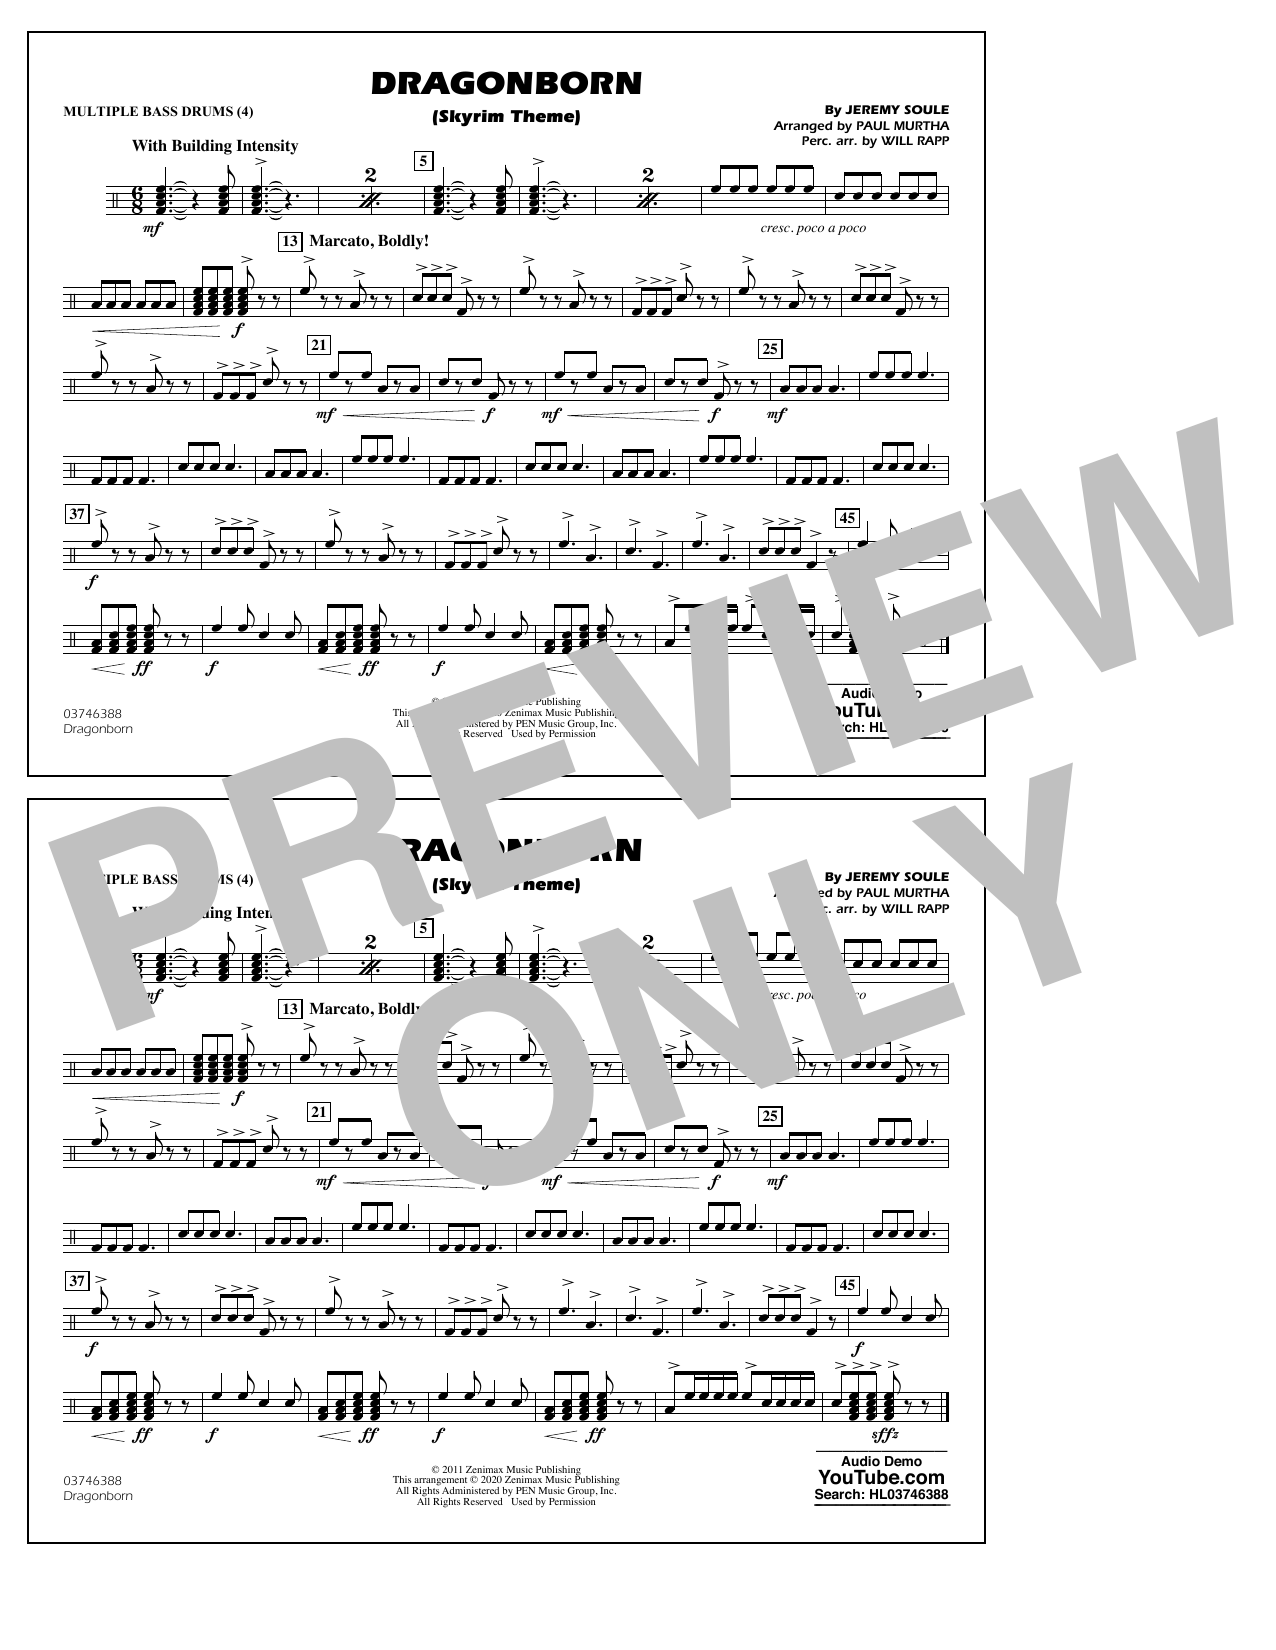 Dragonborn (Skyrim Theme) (arr. Will Rapp & Paul Murtha) - Multiple Bass Drums Sheet Music